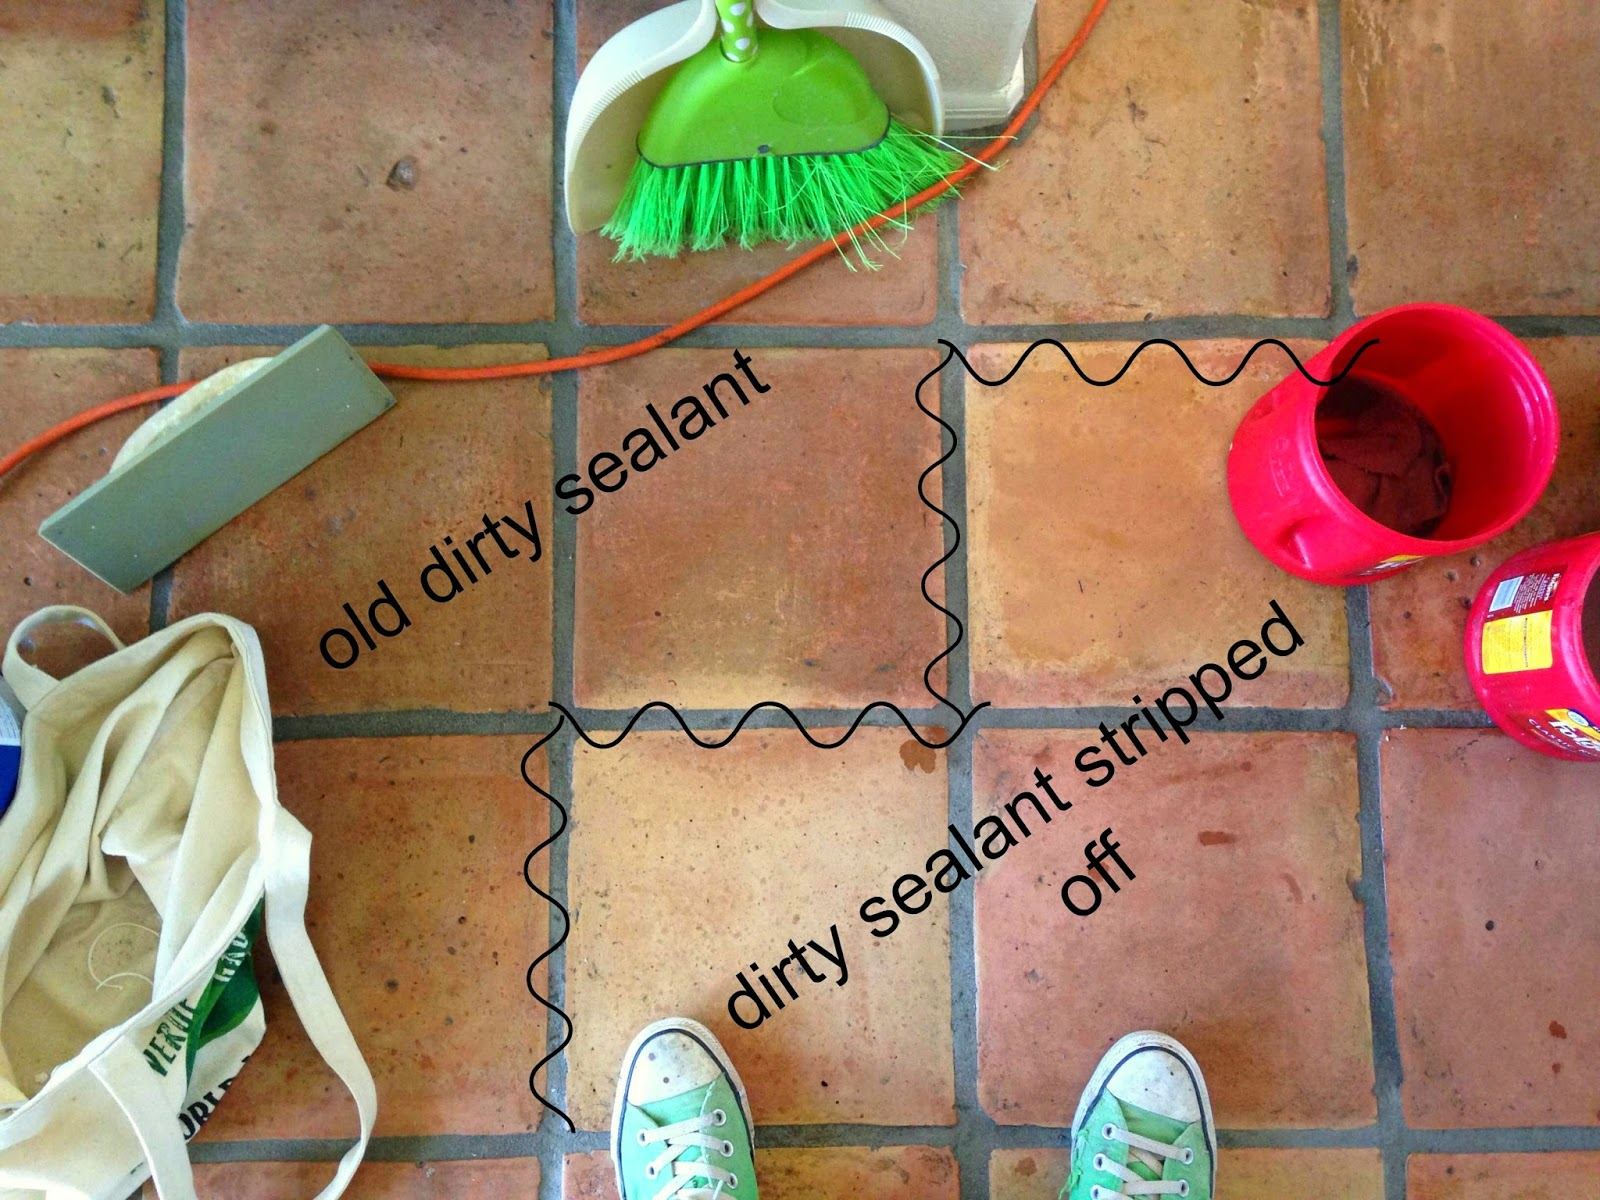 Dusty coyote stripping and sealing a saltillo tile floor hhow to strip saltillo tile floors strip saltillo tile strip terracotta tile floor dailygadgetfo Images